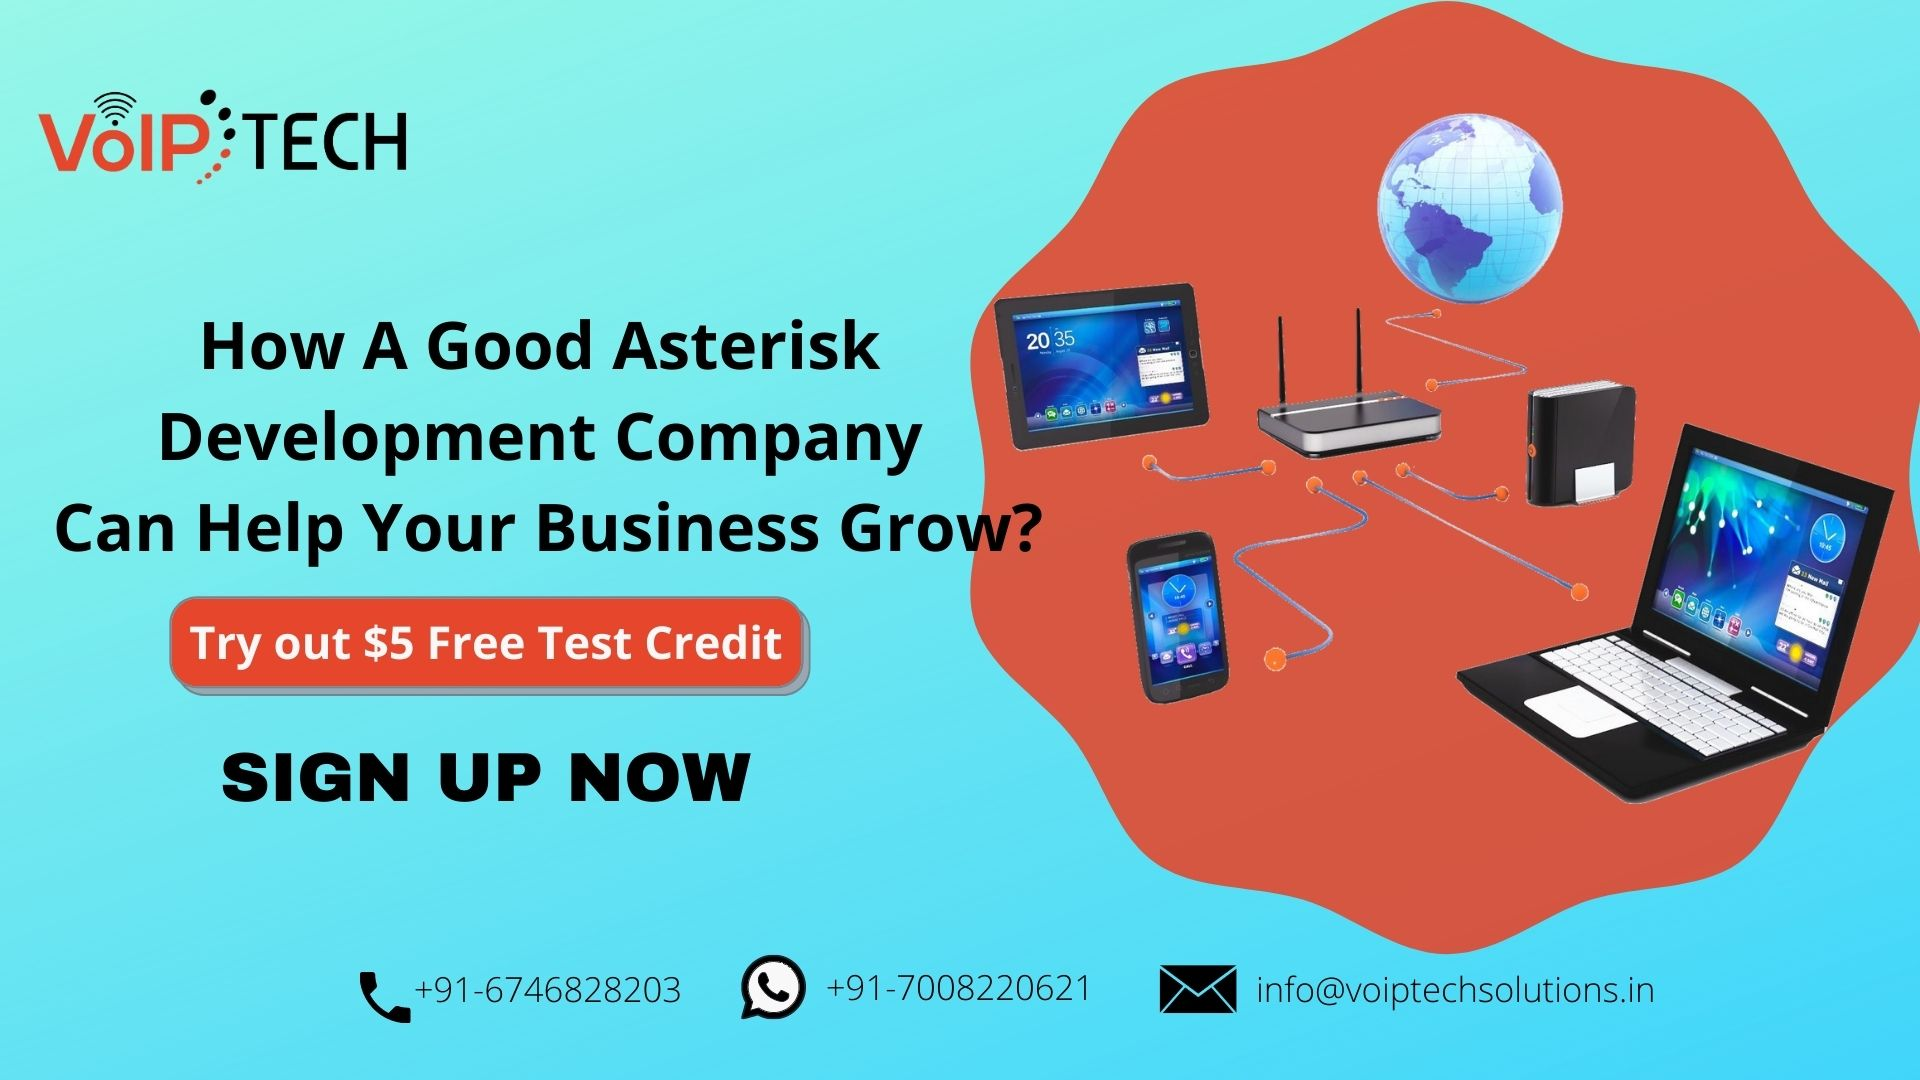 Asterisk Development Company, Asterisk Development, How A Good Asterisk Development Company Can Help Your Business Grow?, VoIP tech solutions, vici dialer, virtual number, Voip Providers, voip services in india, best sip provider, business voip providers, VoIP Phone Numbers, voip minutes provider, top voip providers, voip minutes, International VoIP Provider